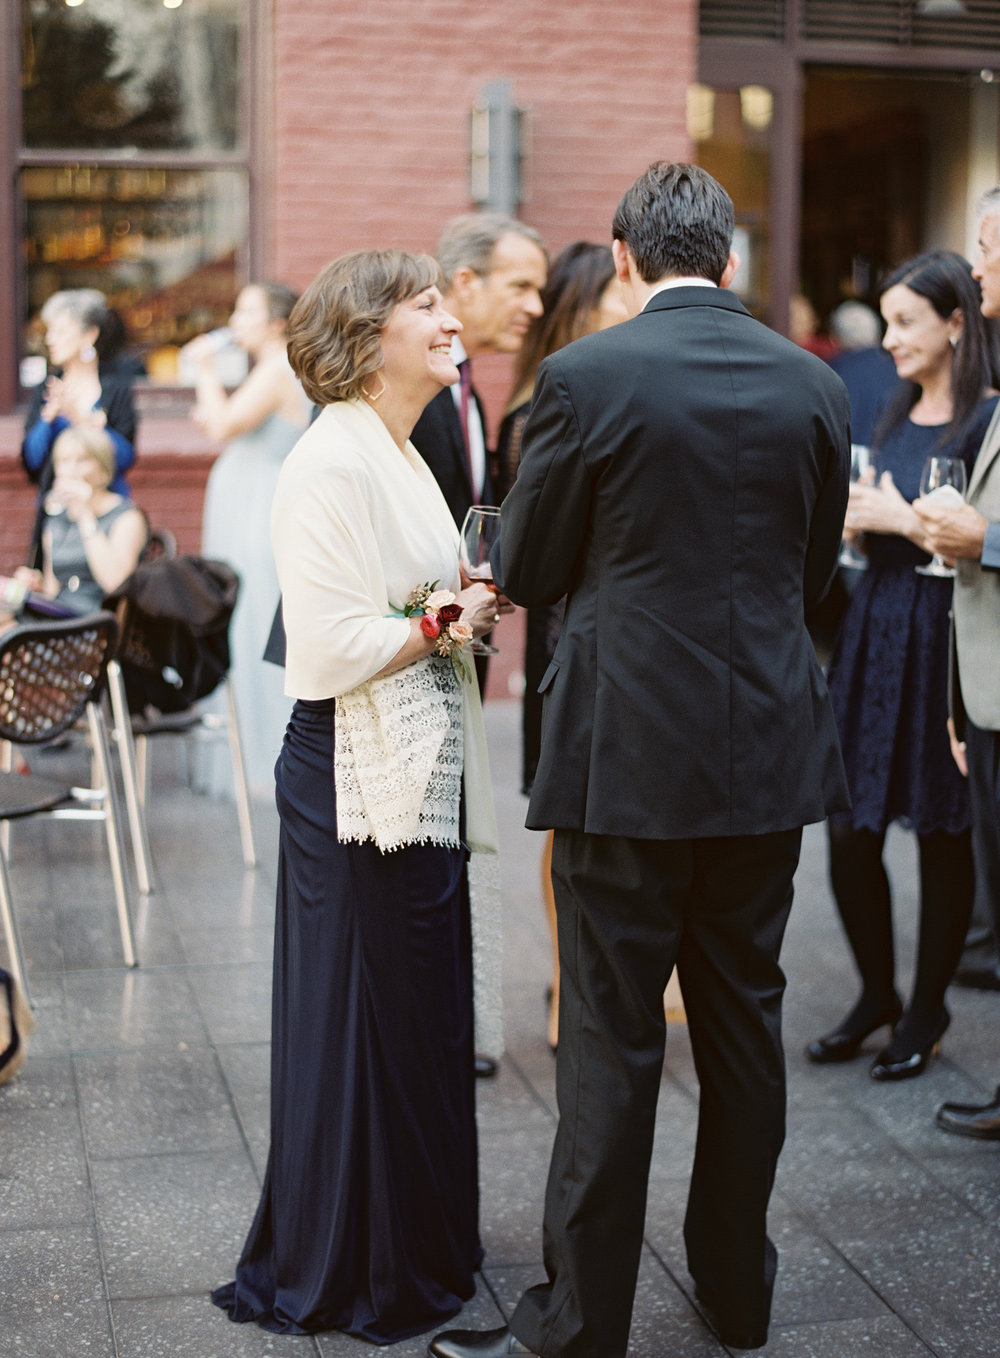 Meghan Mehan Photography - California Wedding Photographer | San Francisco City Hall Wedding 104.jpg